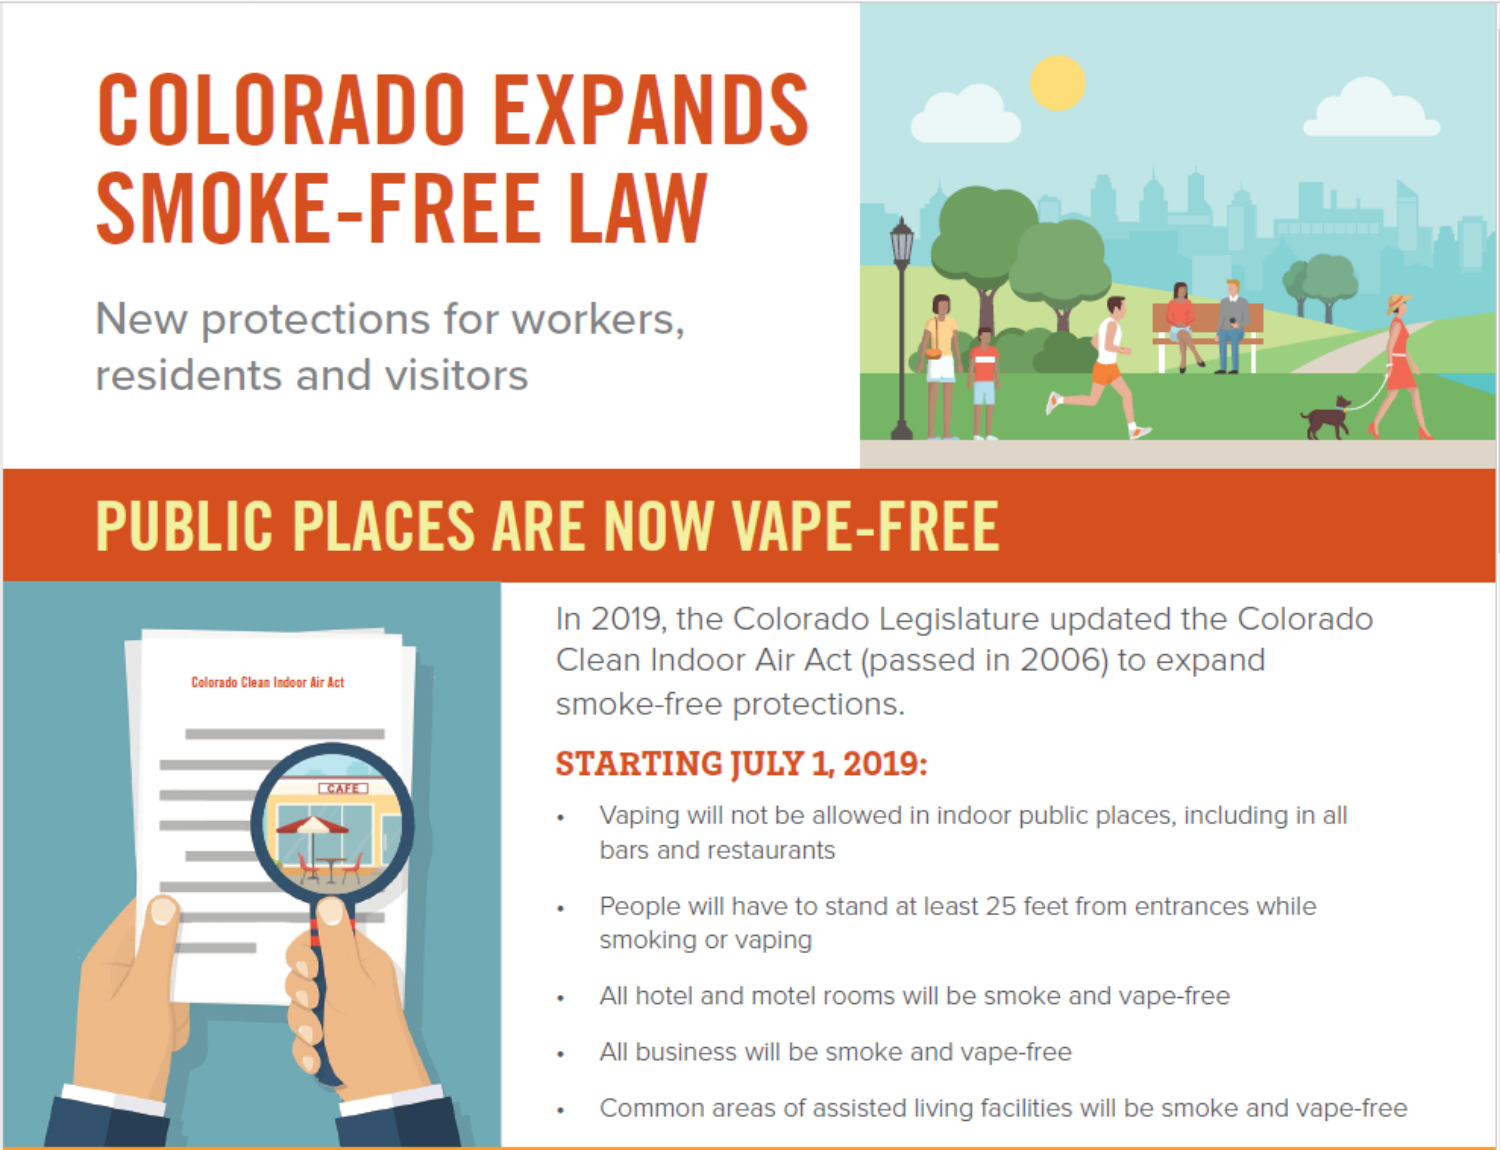 New State Law Expands Vaping Rules in the Colorado Clean